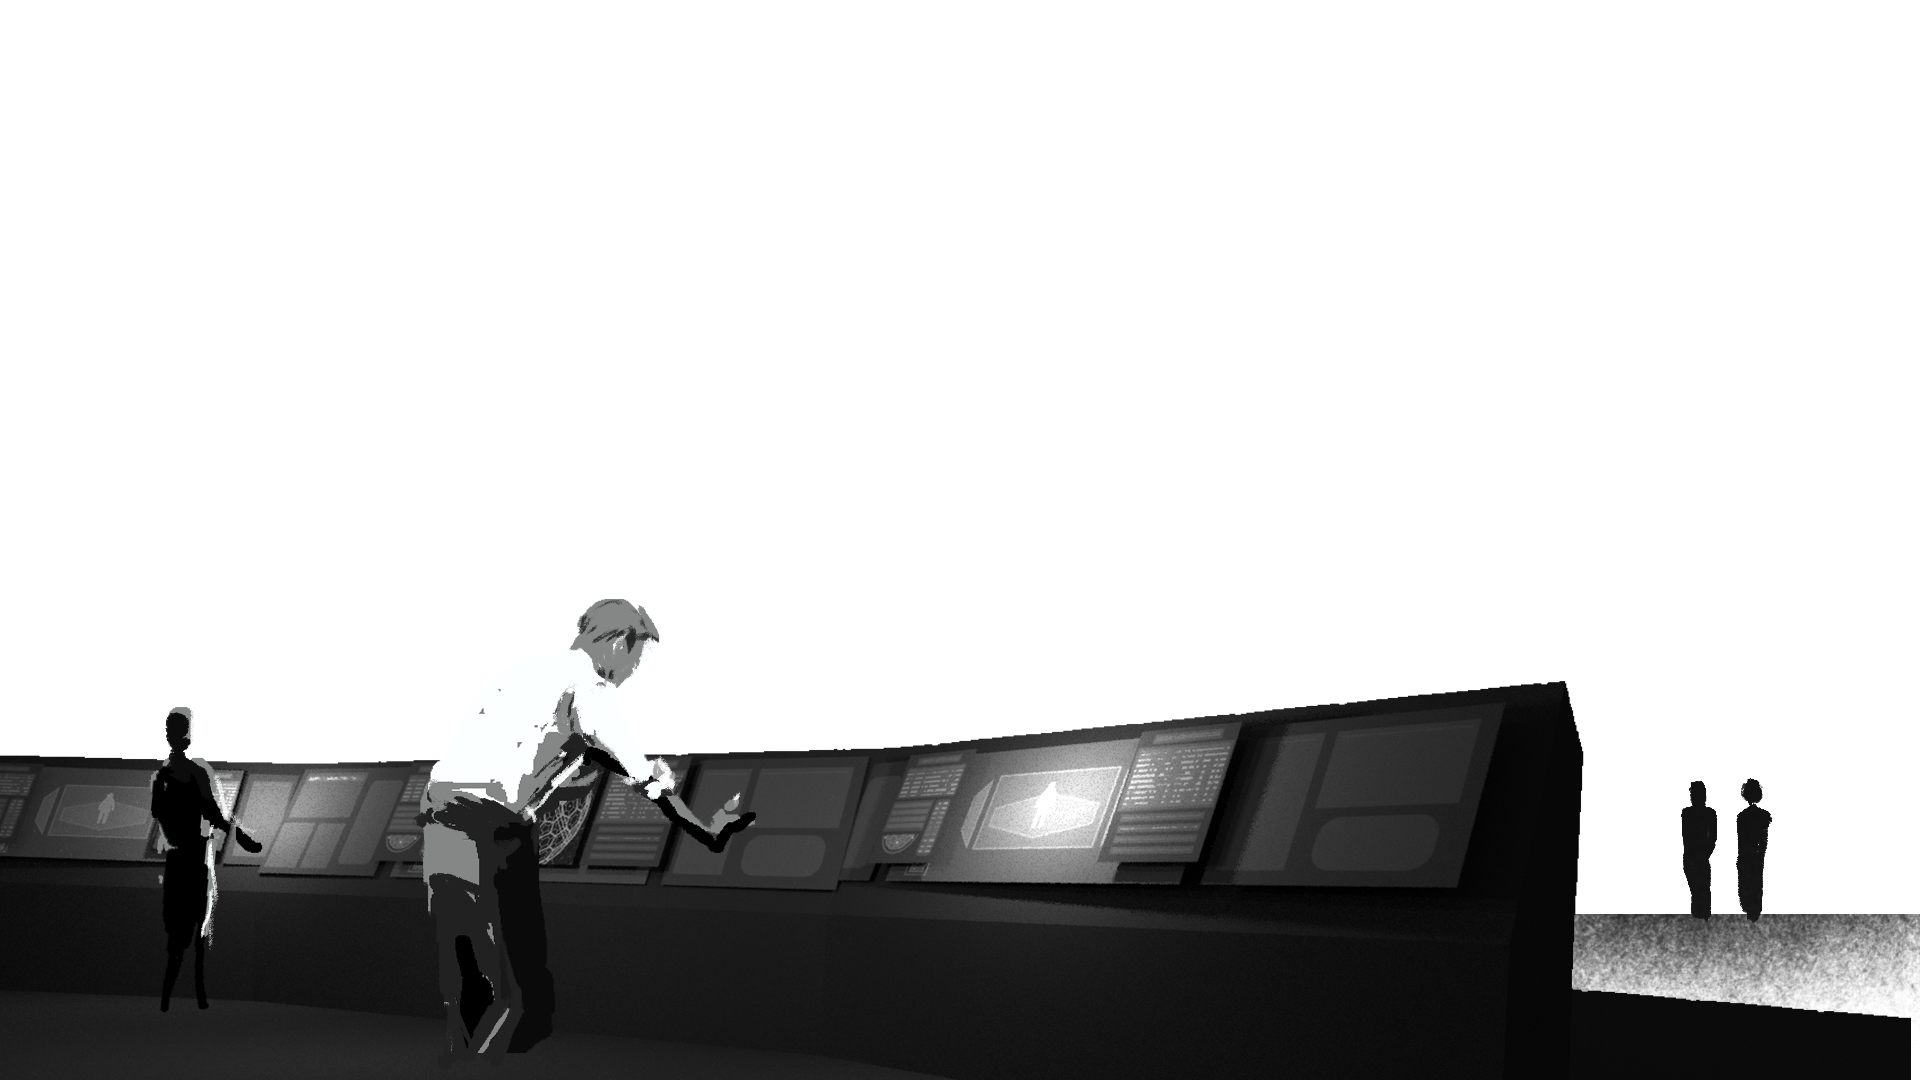 Monochrome image of man hunched over desk in mission control setting